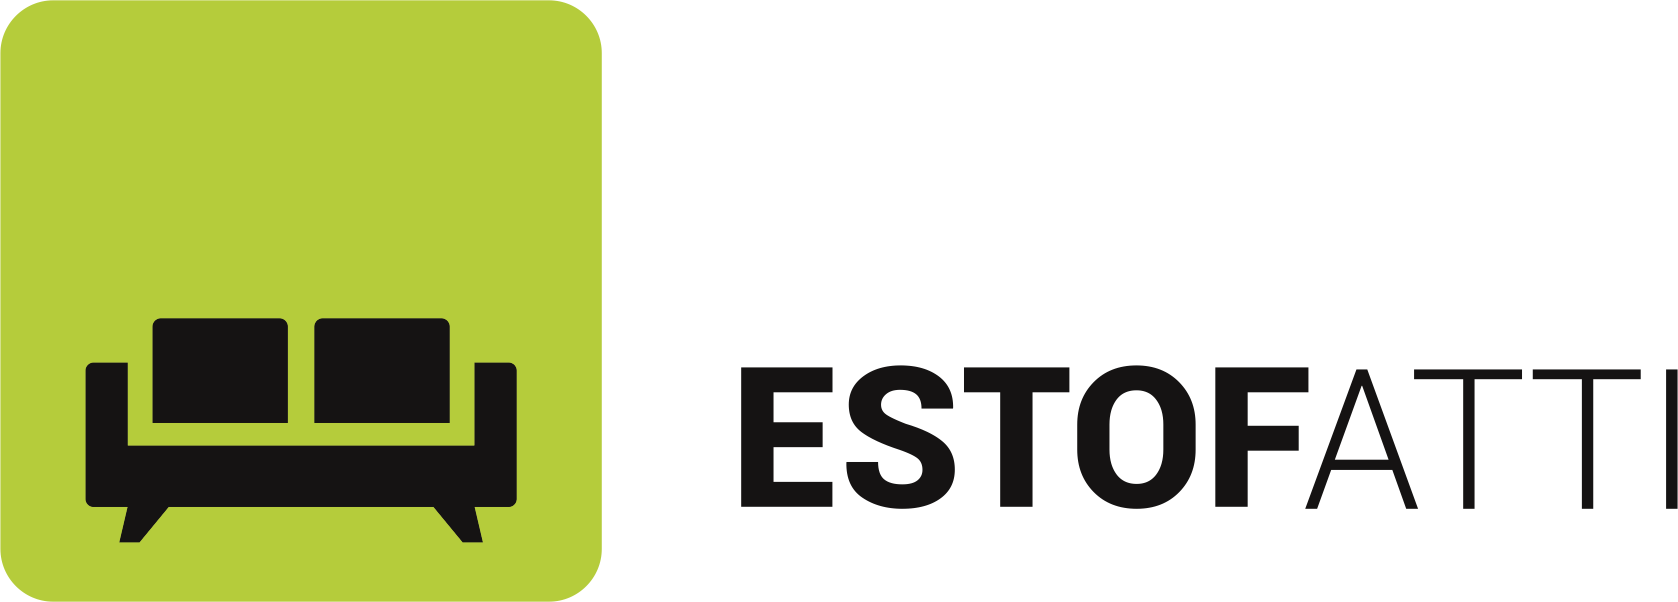 Logotipo Estofatti - 2019